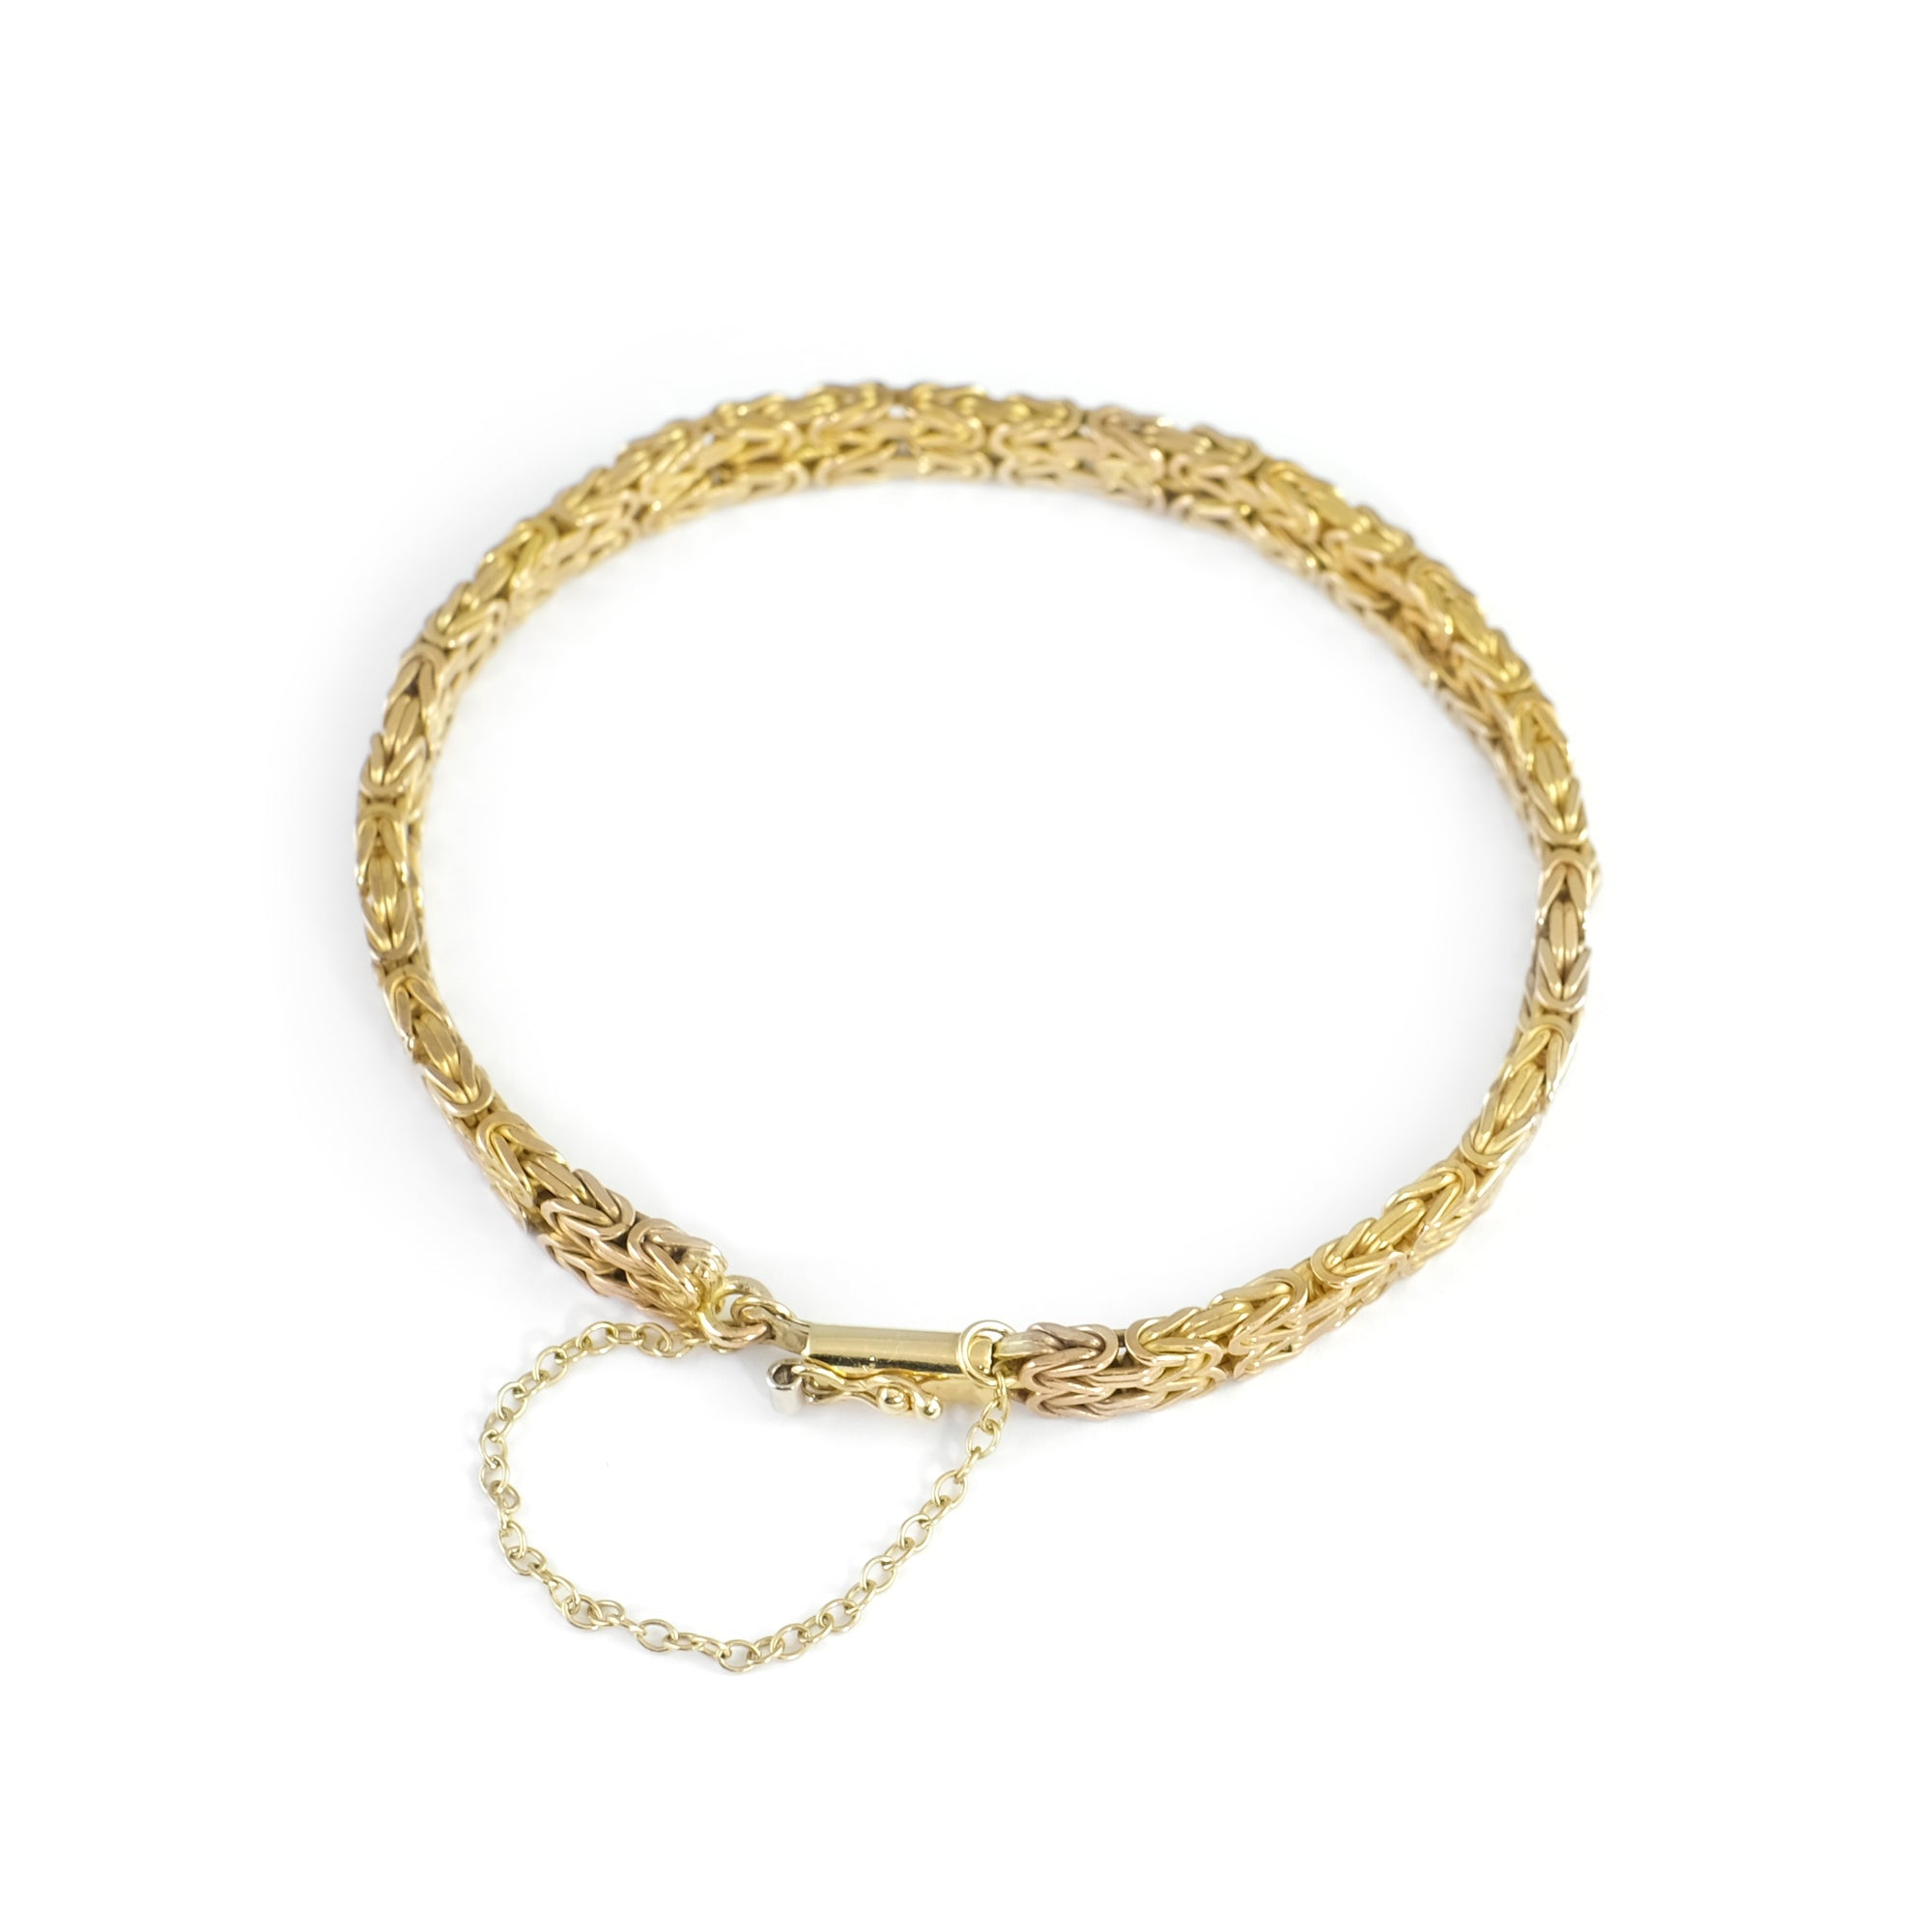 Vintage 9ct Yellow Gold Two Strand Bracelet